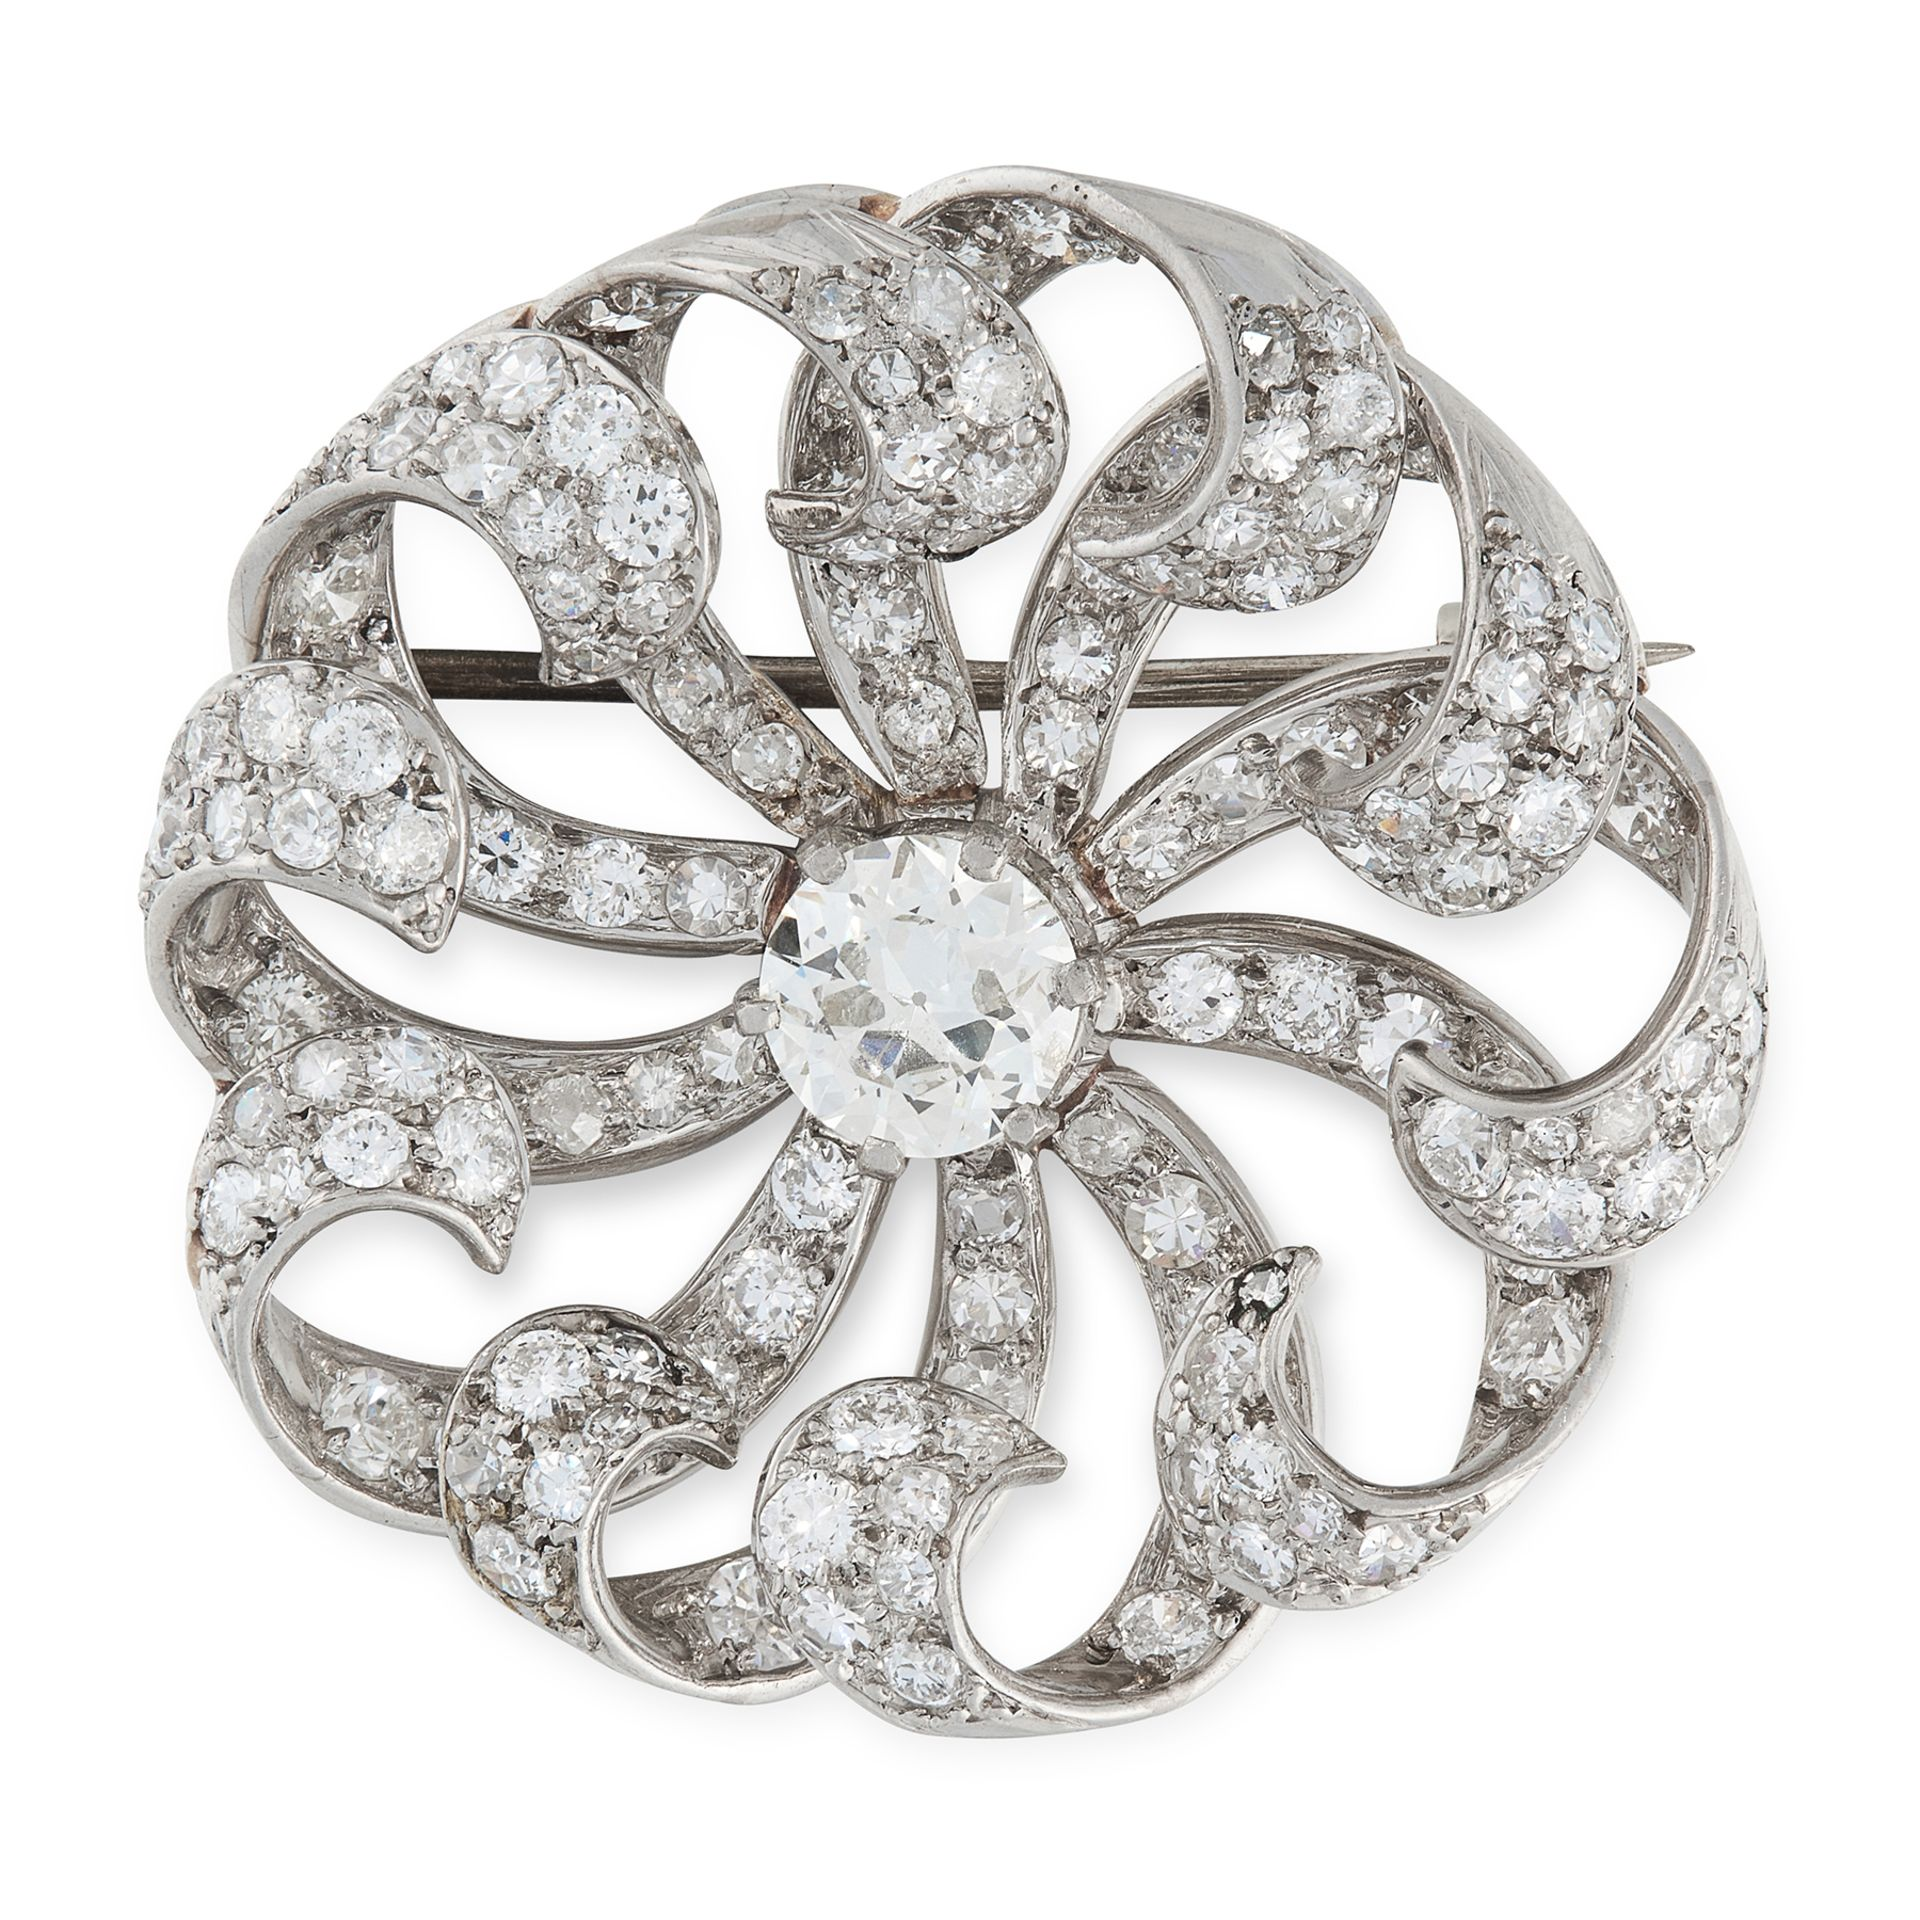 A DIAMOND BROOCH, EARLTY 20TH CENTURY of circular design, set with a central old cut diamond of 0.88